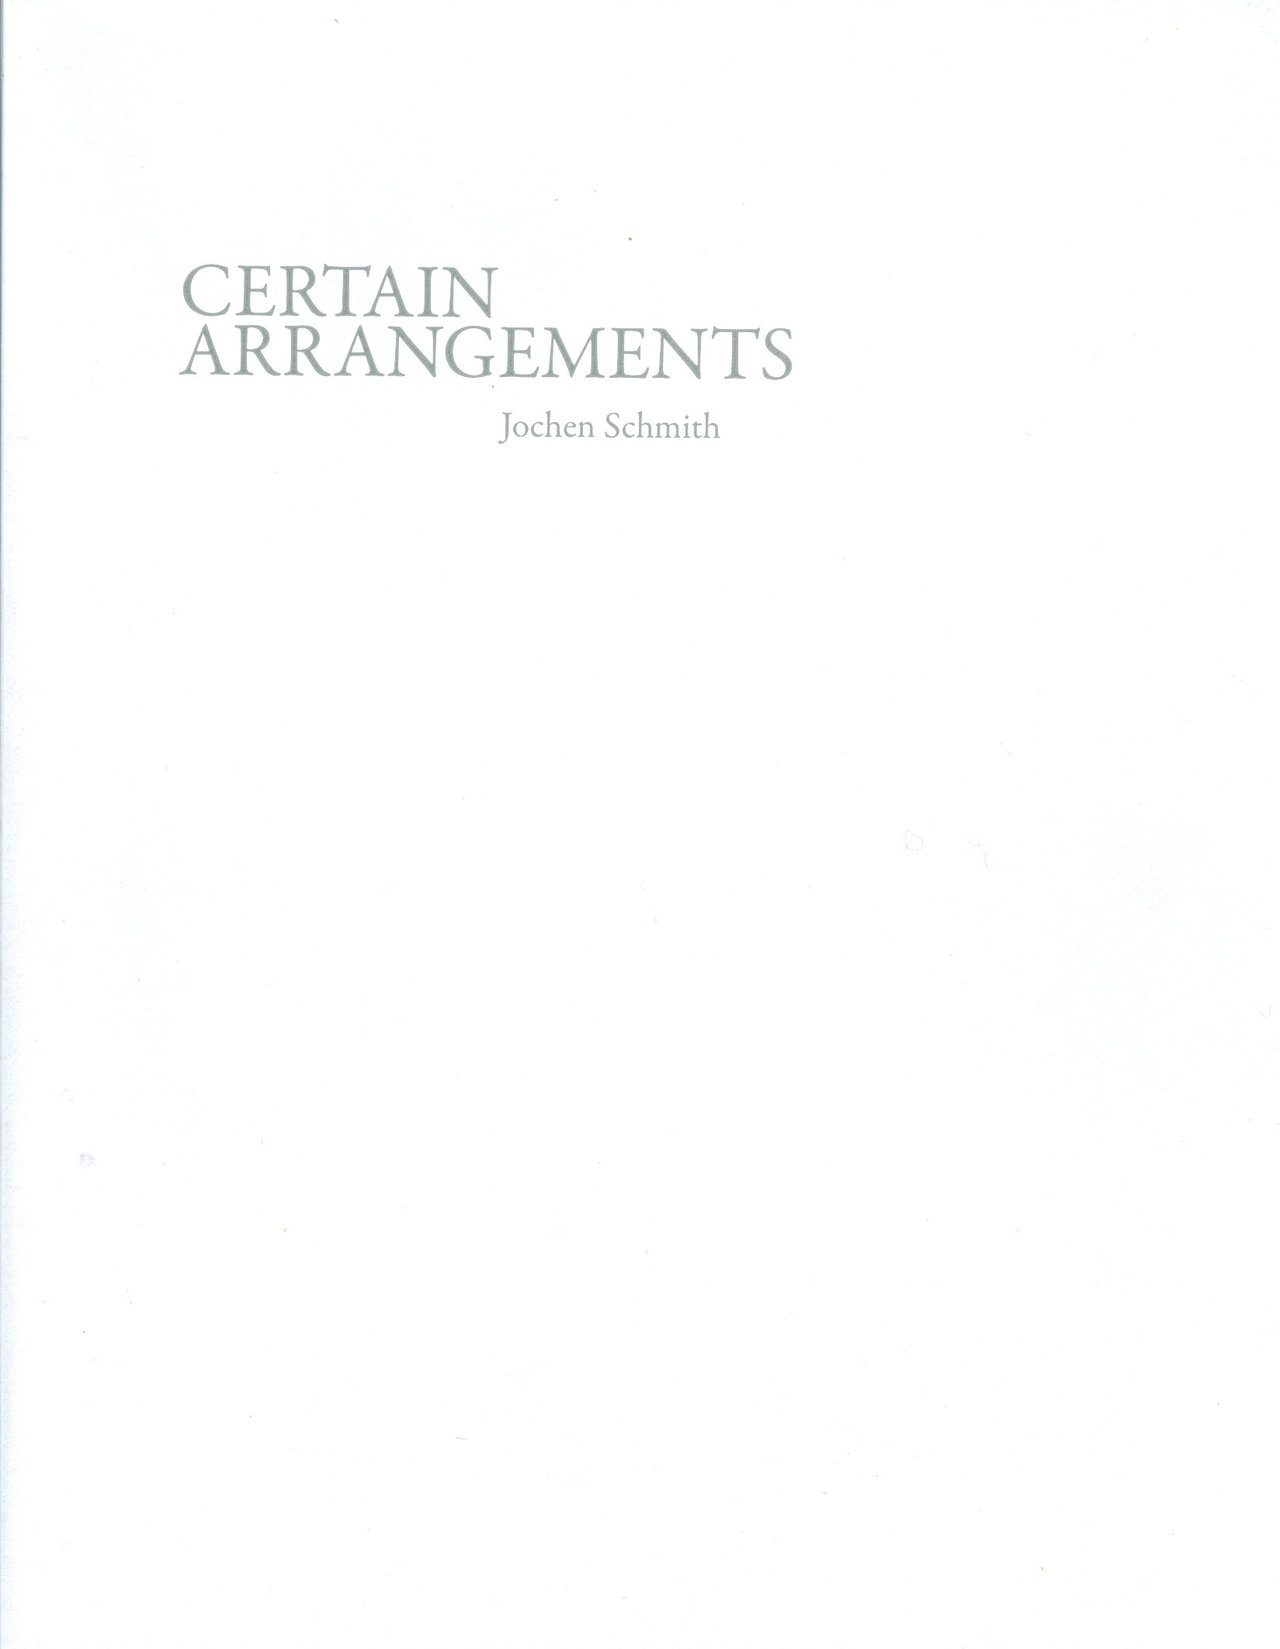 Jochen Schmith: Certain Arrangement